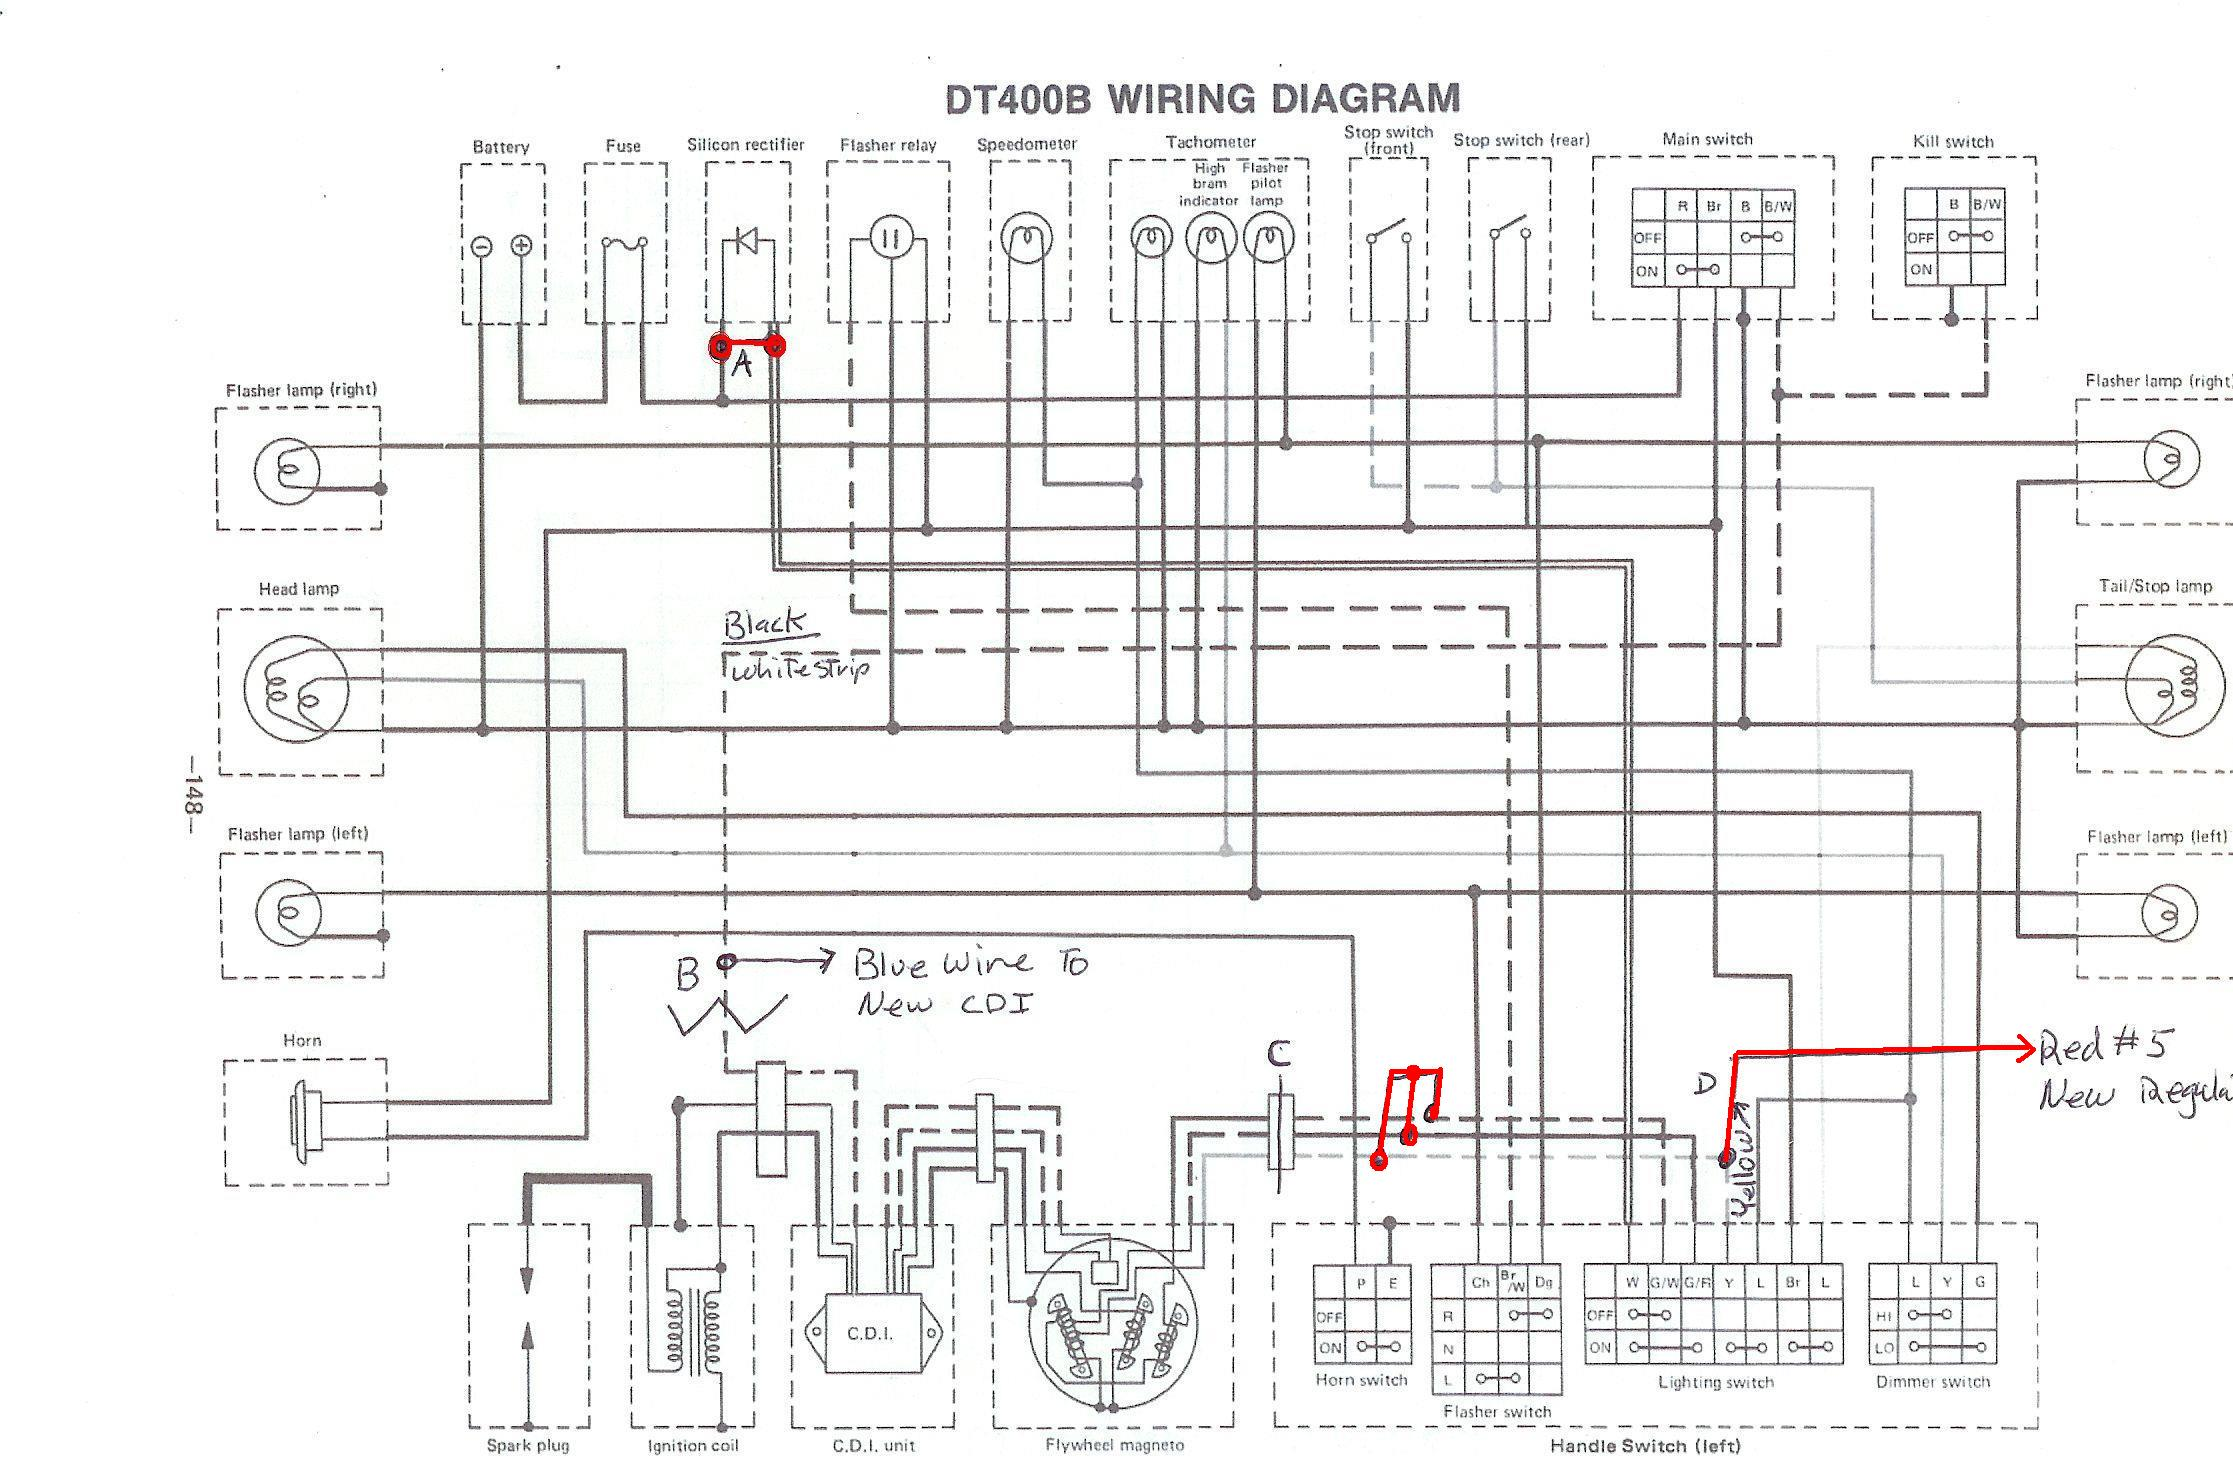 powerdynamo for yamaha dt1  2  3  rt1  2  3  dt250  360  400  ty250  yza250 1975 yamaha dt 250 wiring diagram yamaha majesty 250 wiring diagram